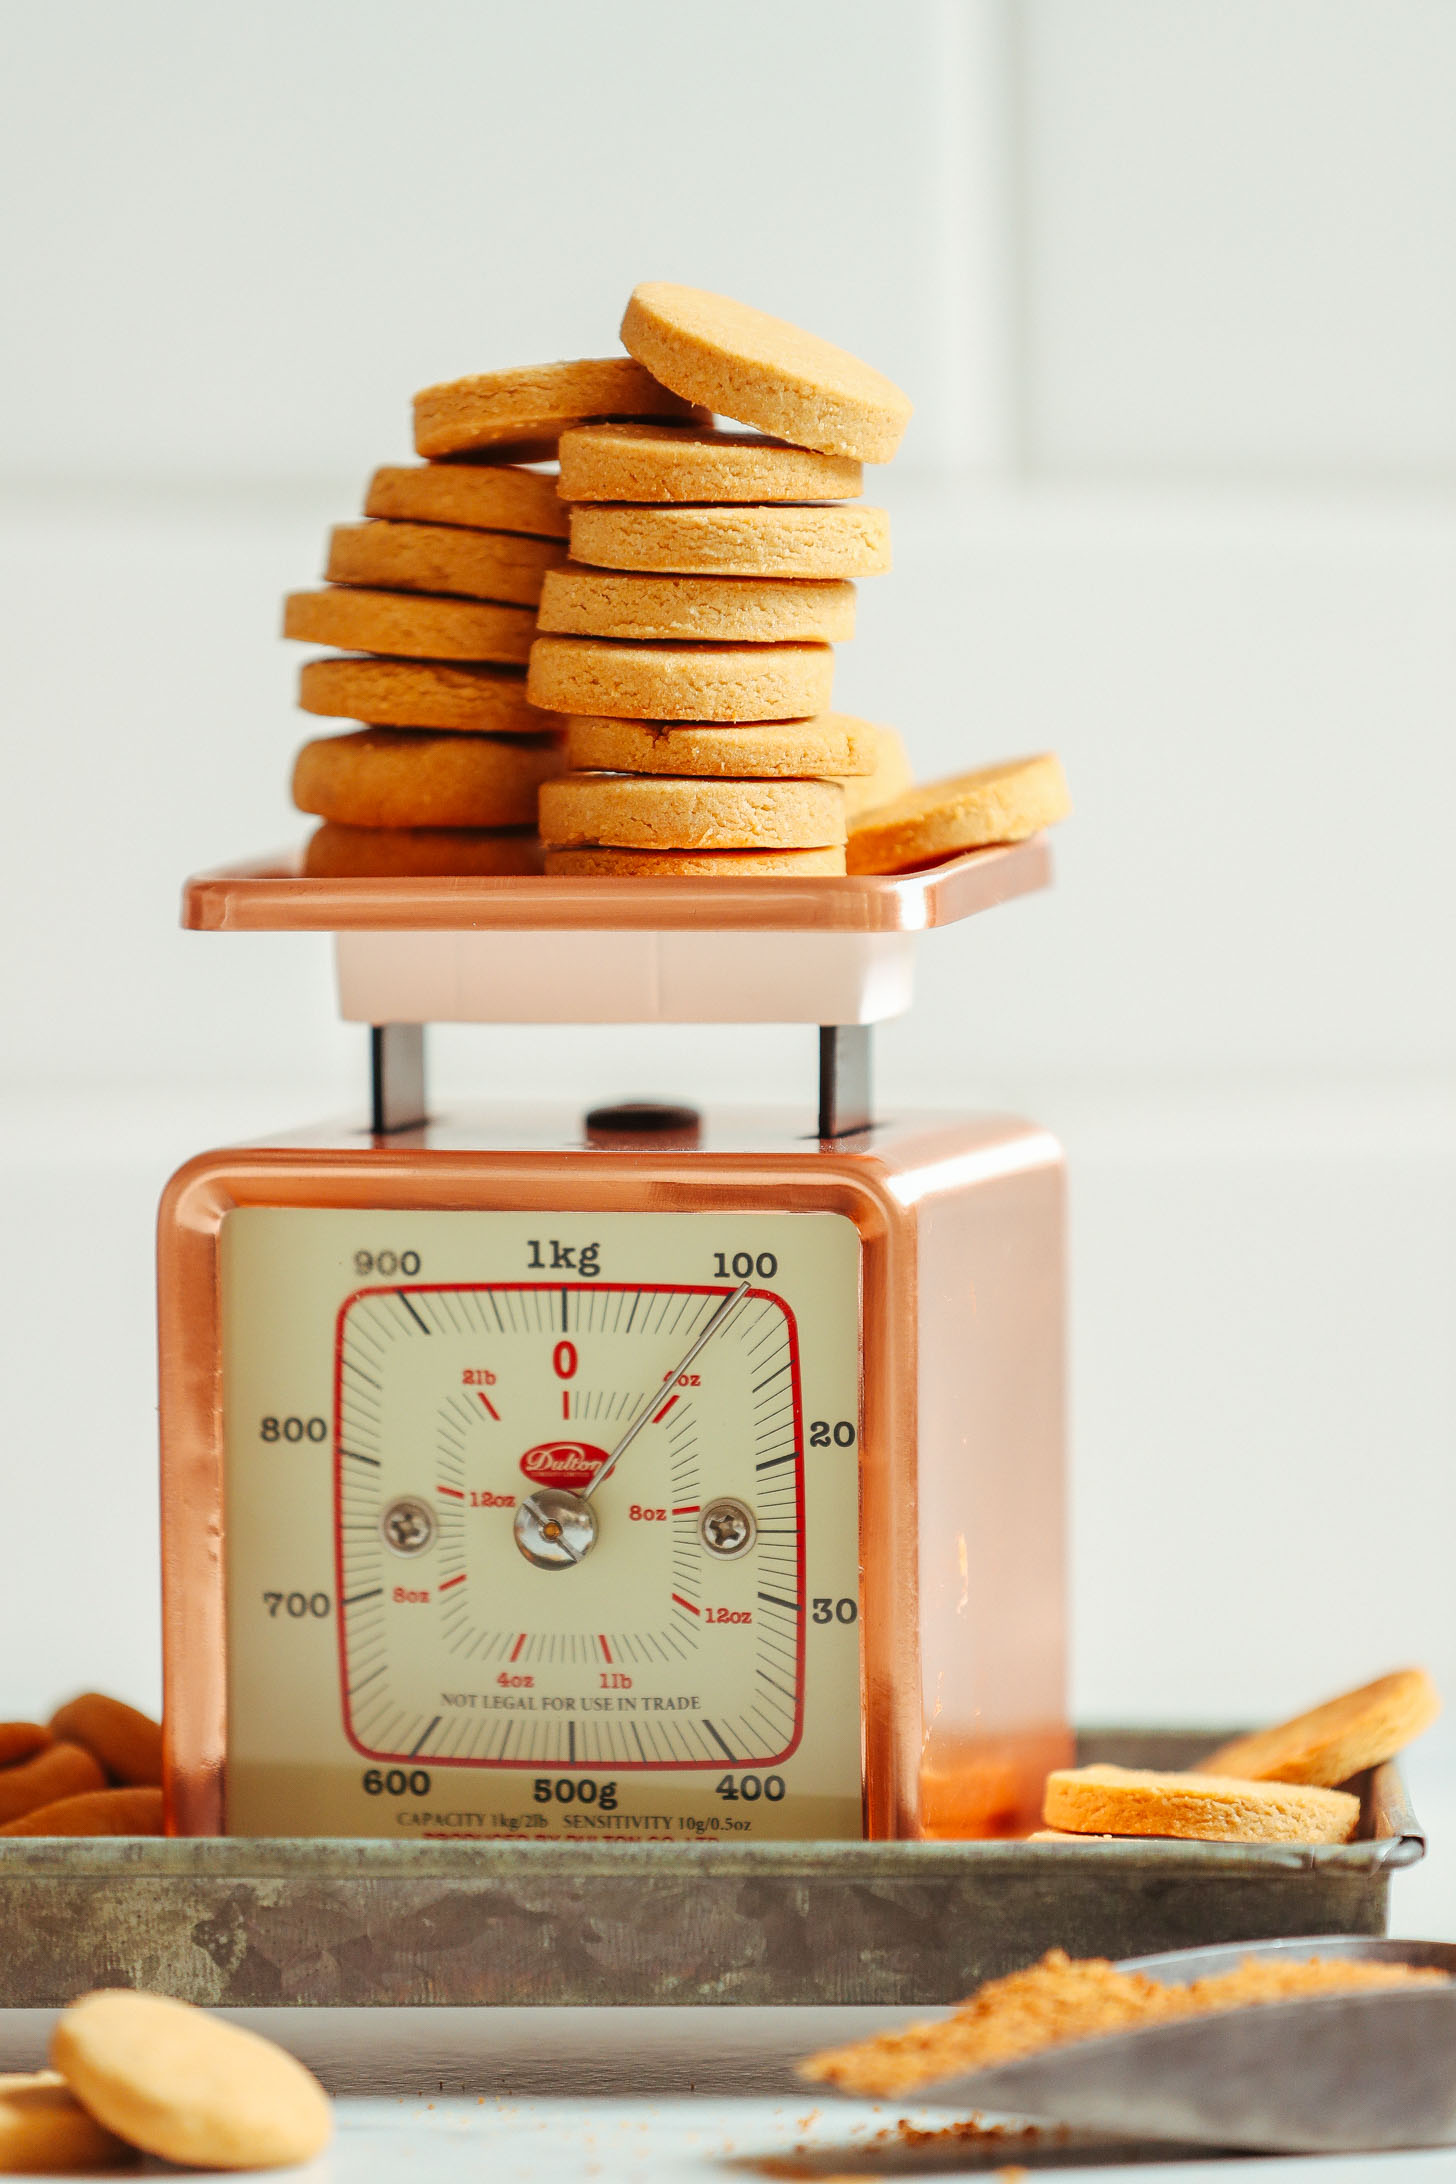 Stacks of sweet and crisp Vegan Gluten Free Vanilla Wafers perched on a vintage scale